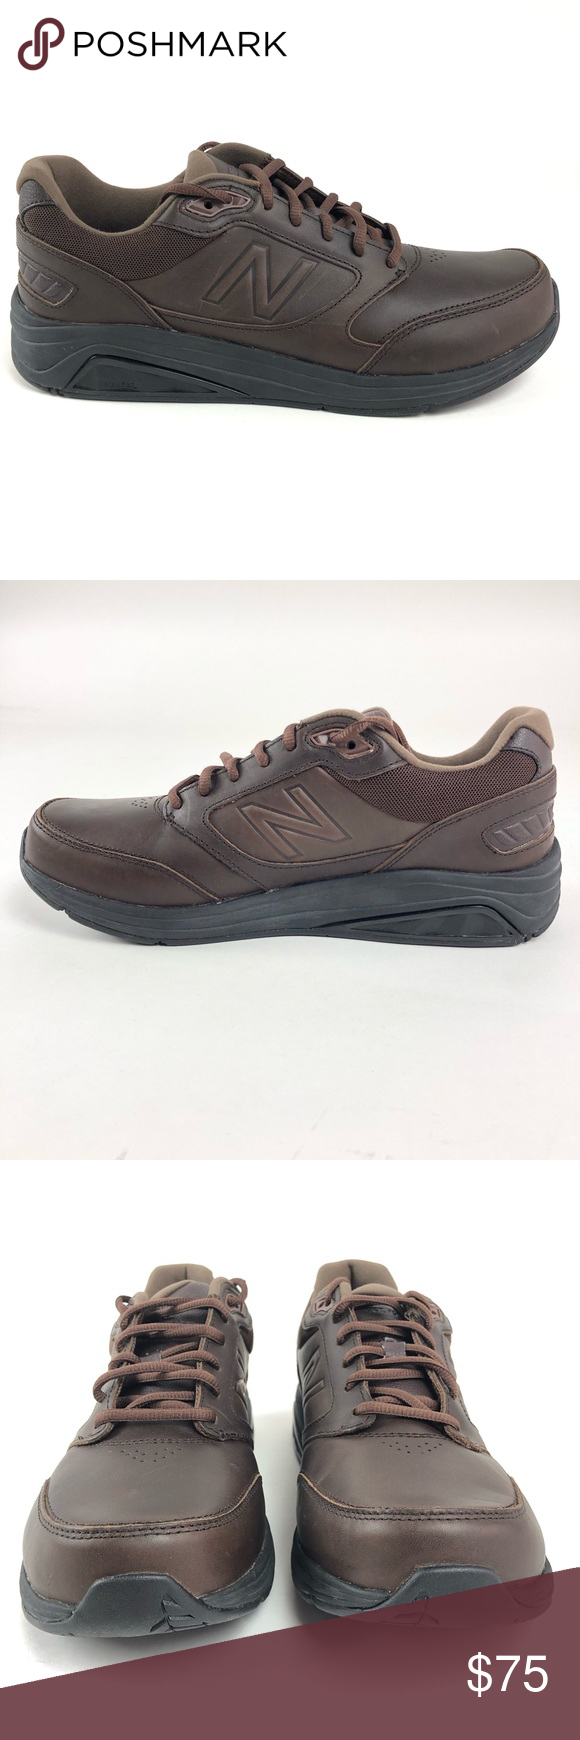 BROWN LEATHER ATHLETIC SNEAKERS NEW